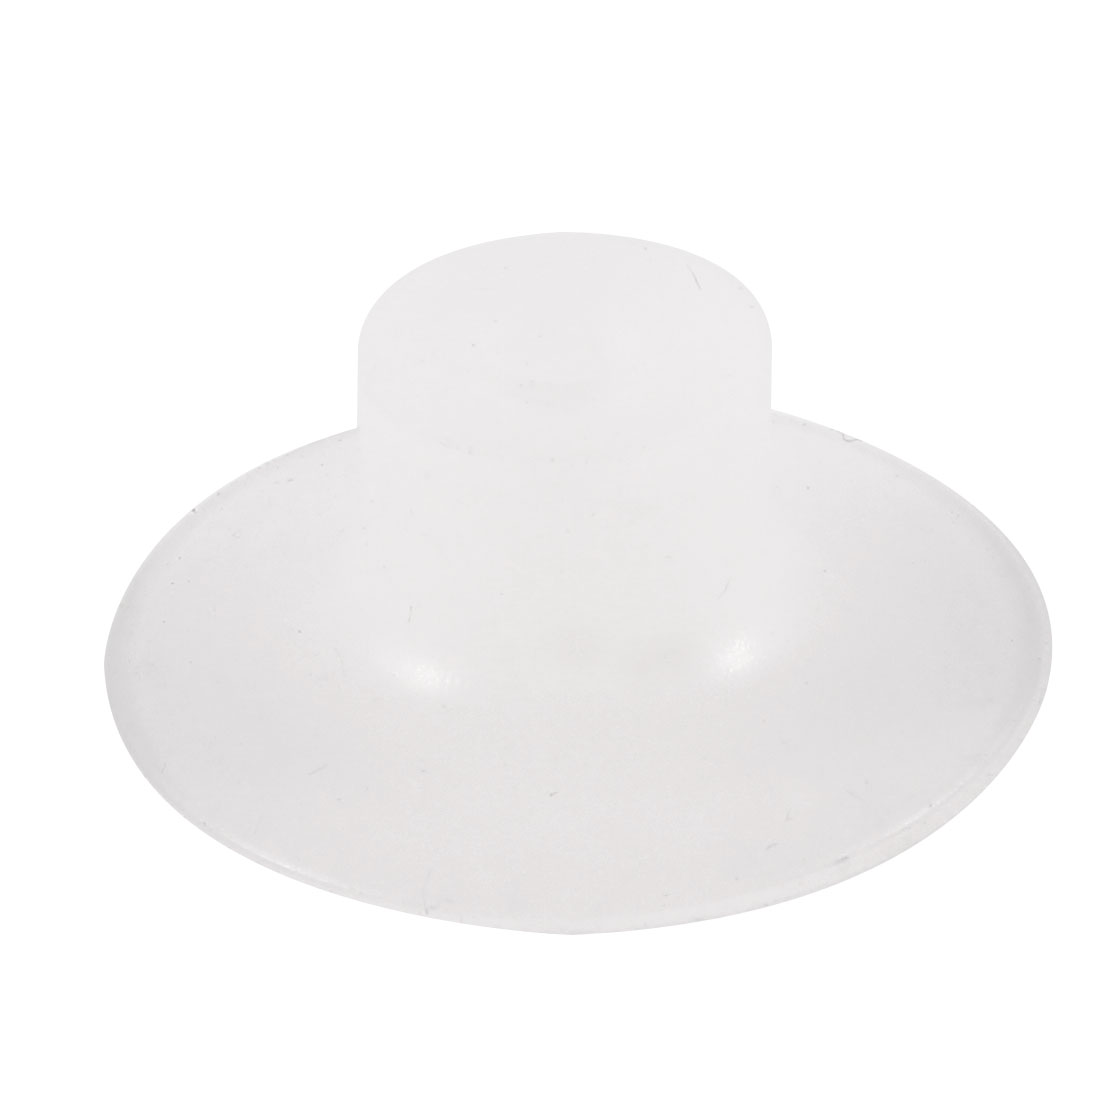 30mm x 10mm Vacuums Silicone Waterproof Suction Cup Sucker Clear White